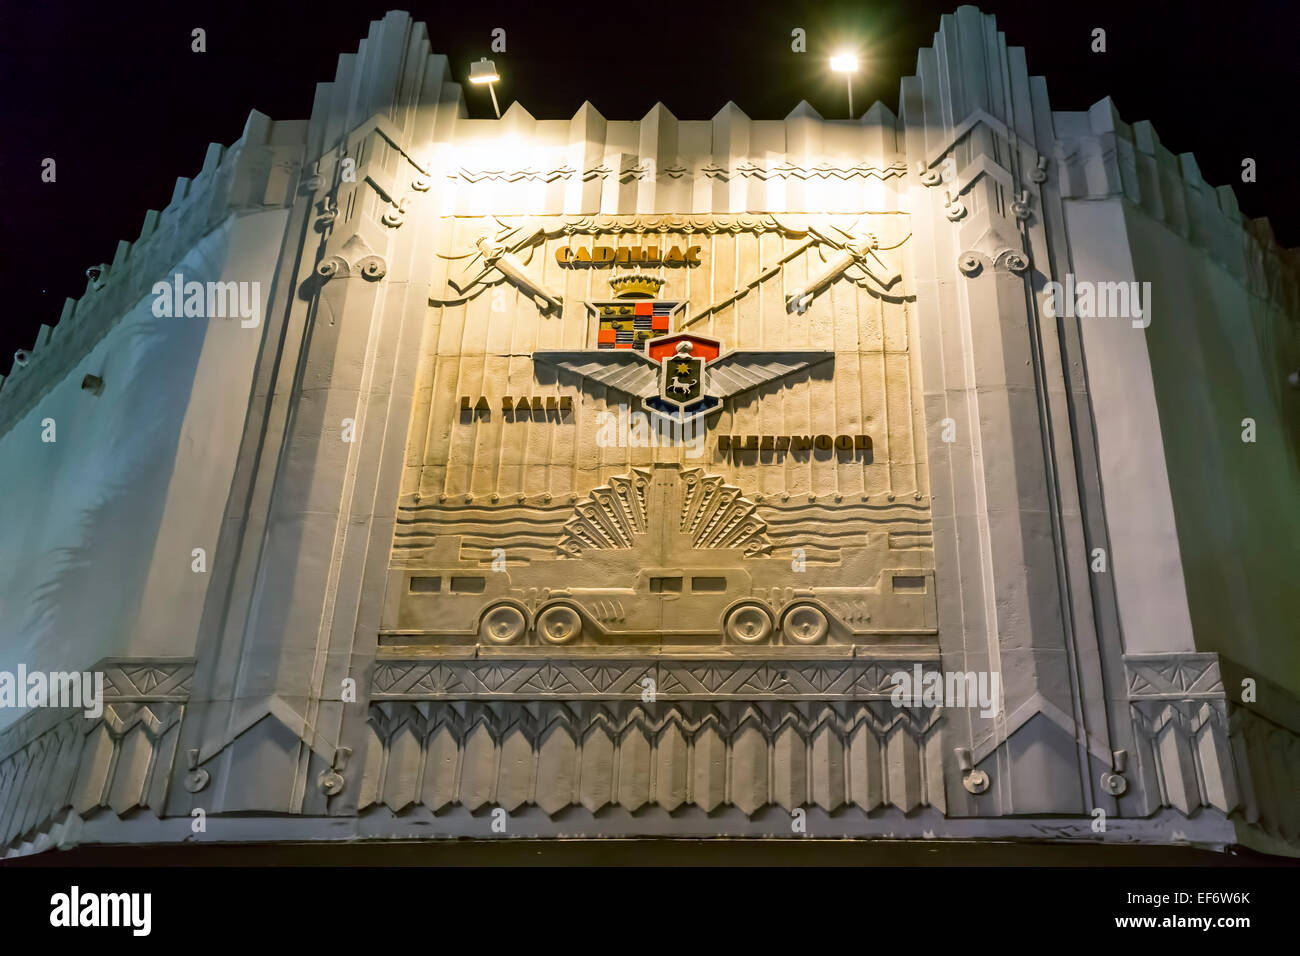 Historic Cadillac La Salle Fleetwood Marquee sign in bas-relief on an Art Deco facade along Lincoln Road Mall in Stock Photo